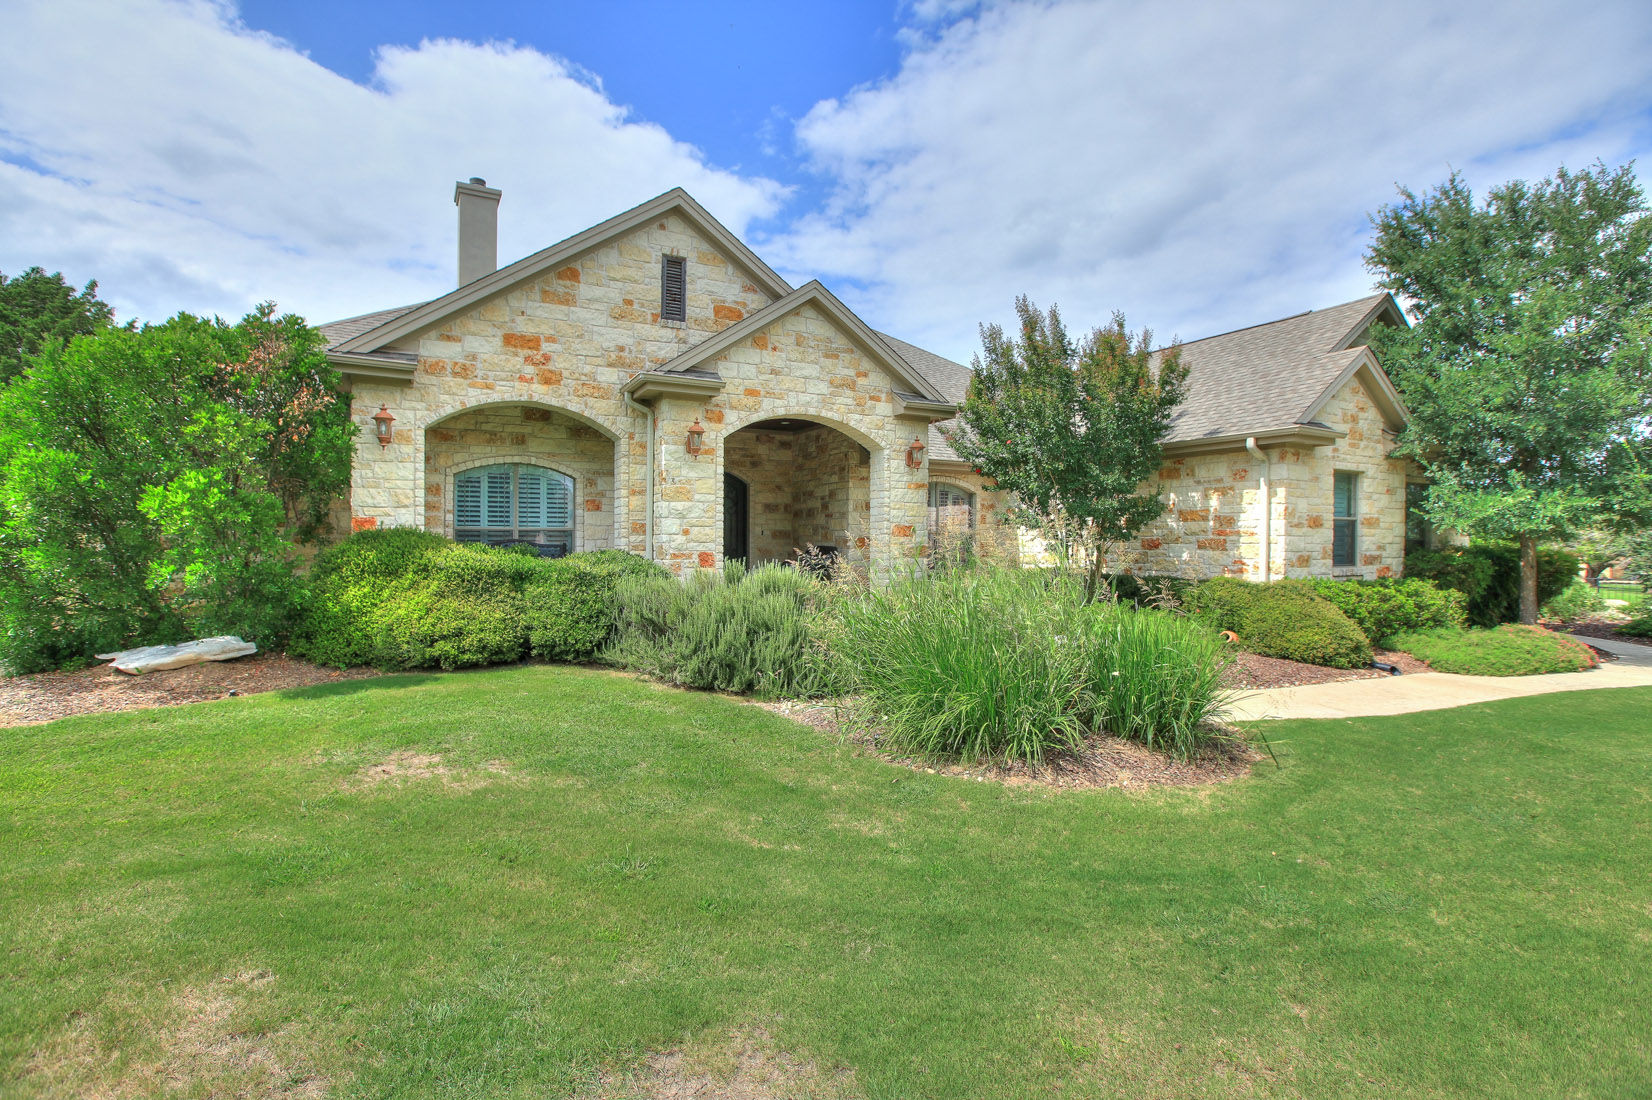 121 walnut tree loop sold homes for sale in georgetown texas team excellence the power of